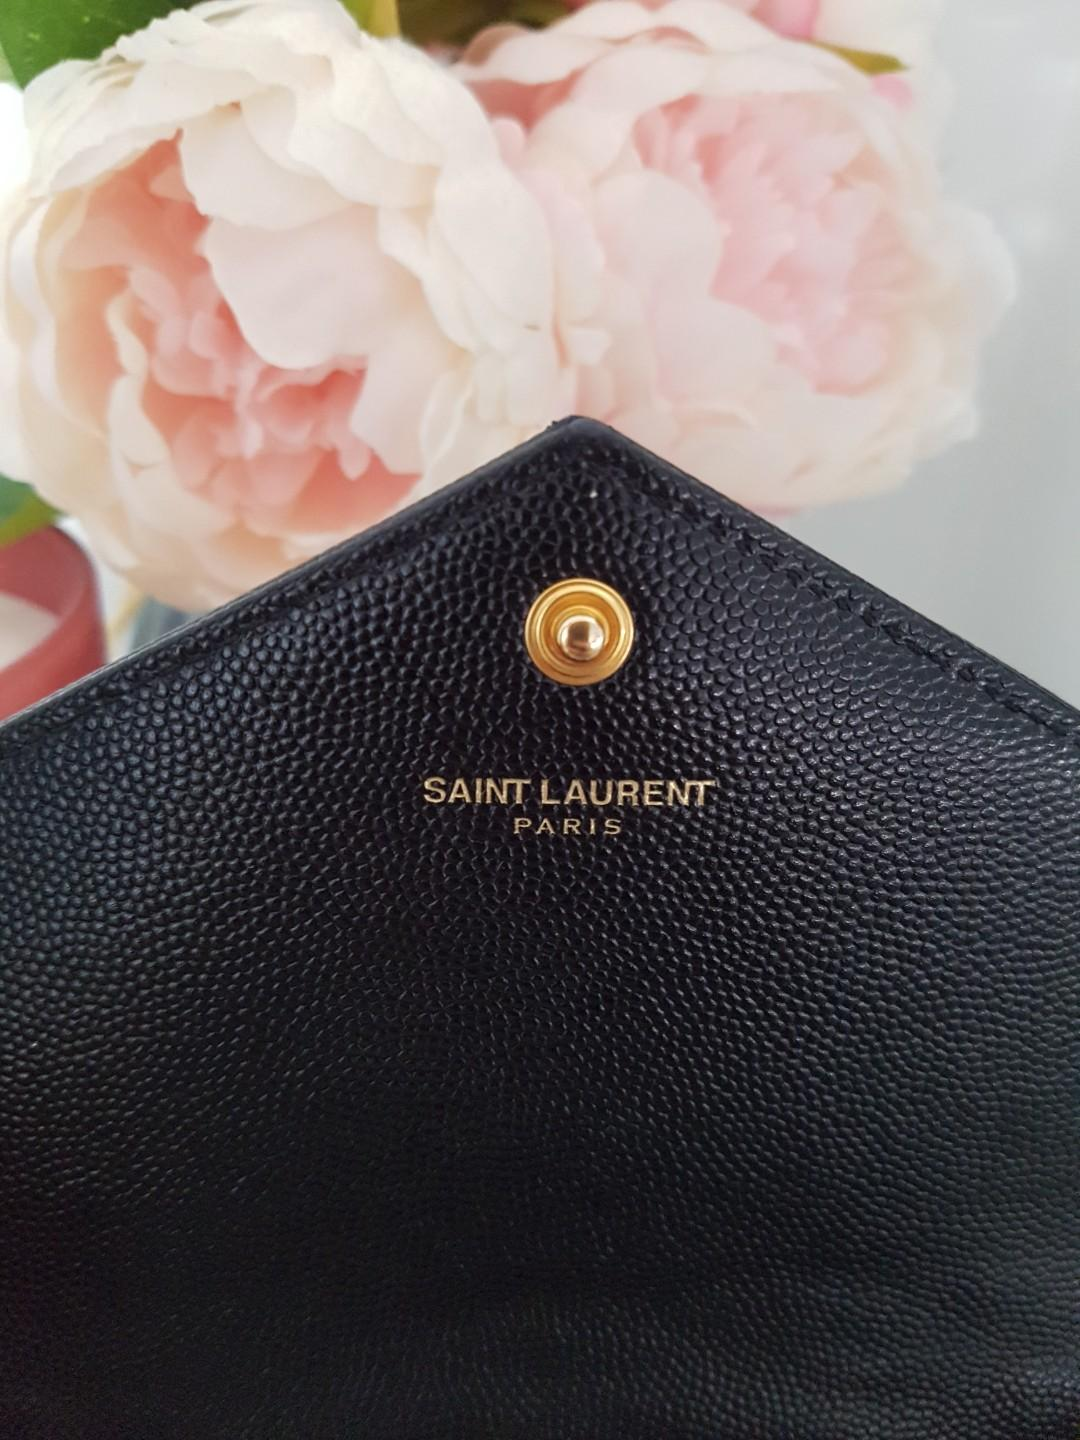 Ysl saint laurent envelope wallet on chain